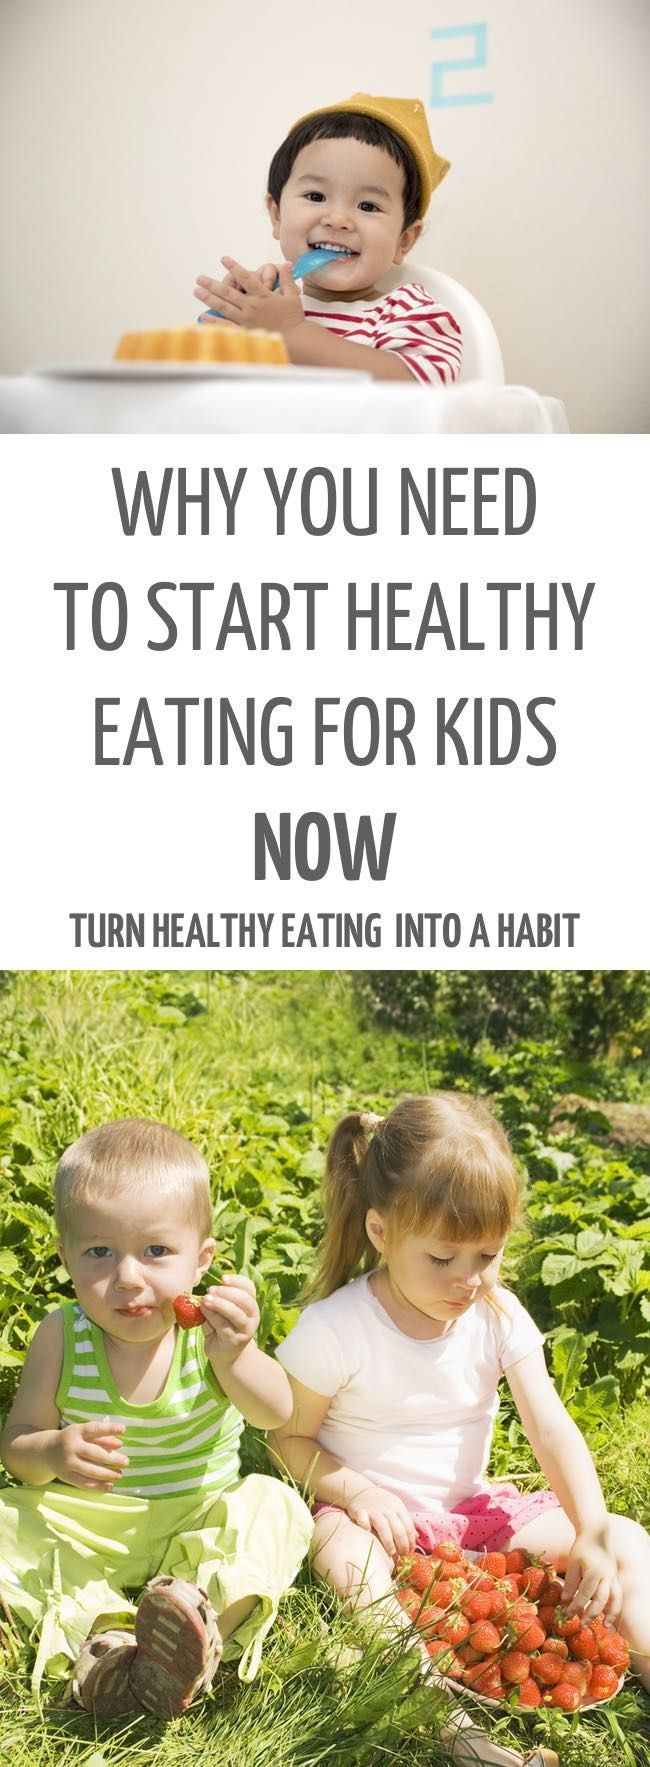 The long term benefits of healthy eating for kids make it tempting not to make an effort. The longer you wait, the more difficult teaching healthy eating is.. #toddler #fussyeater #fussytoddler #toddlerwon'teat #pickyeater #parenting #positiveparenting.